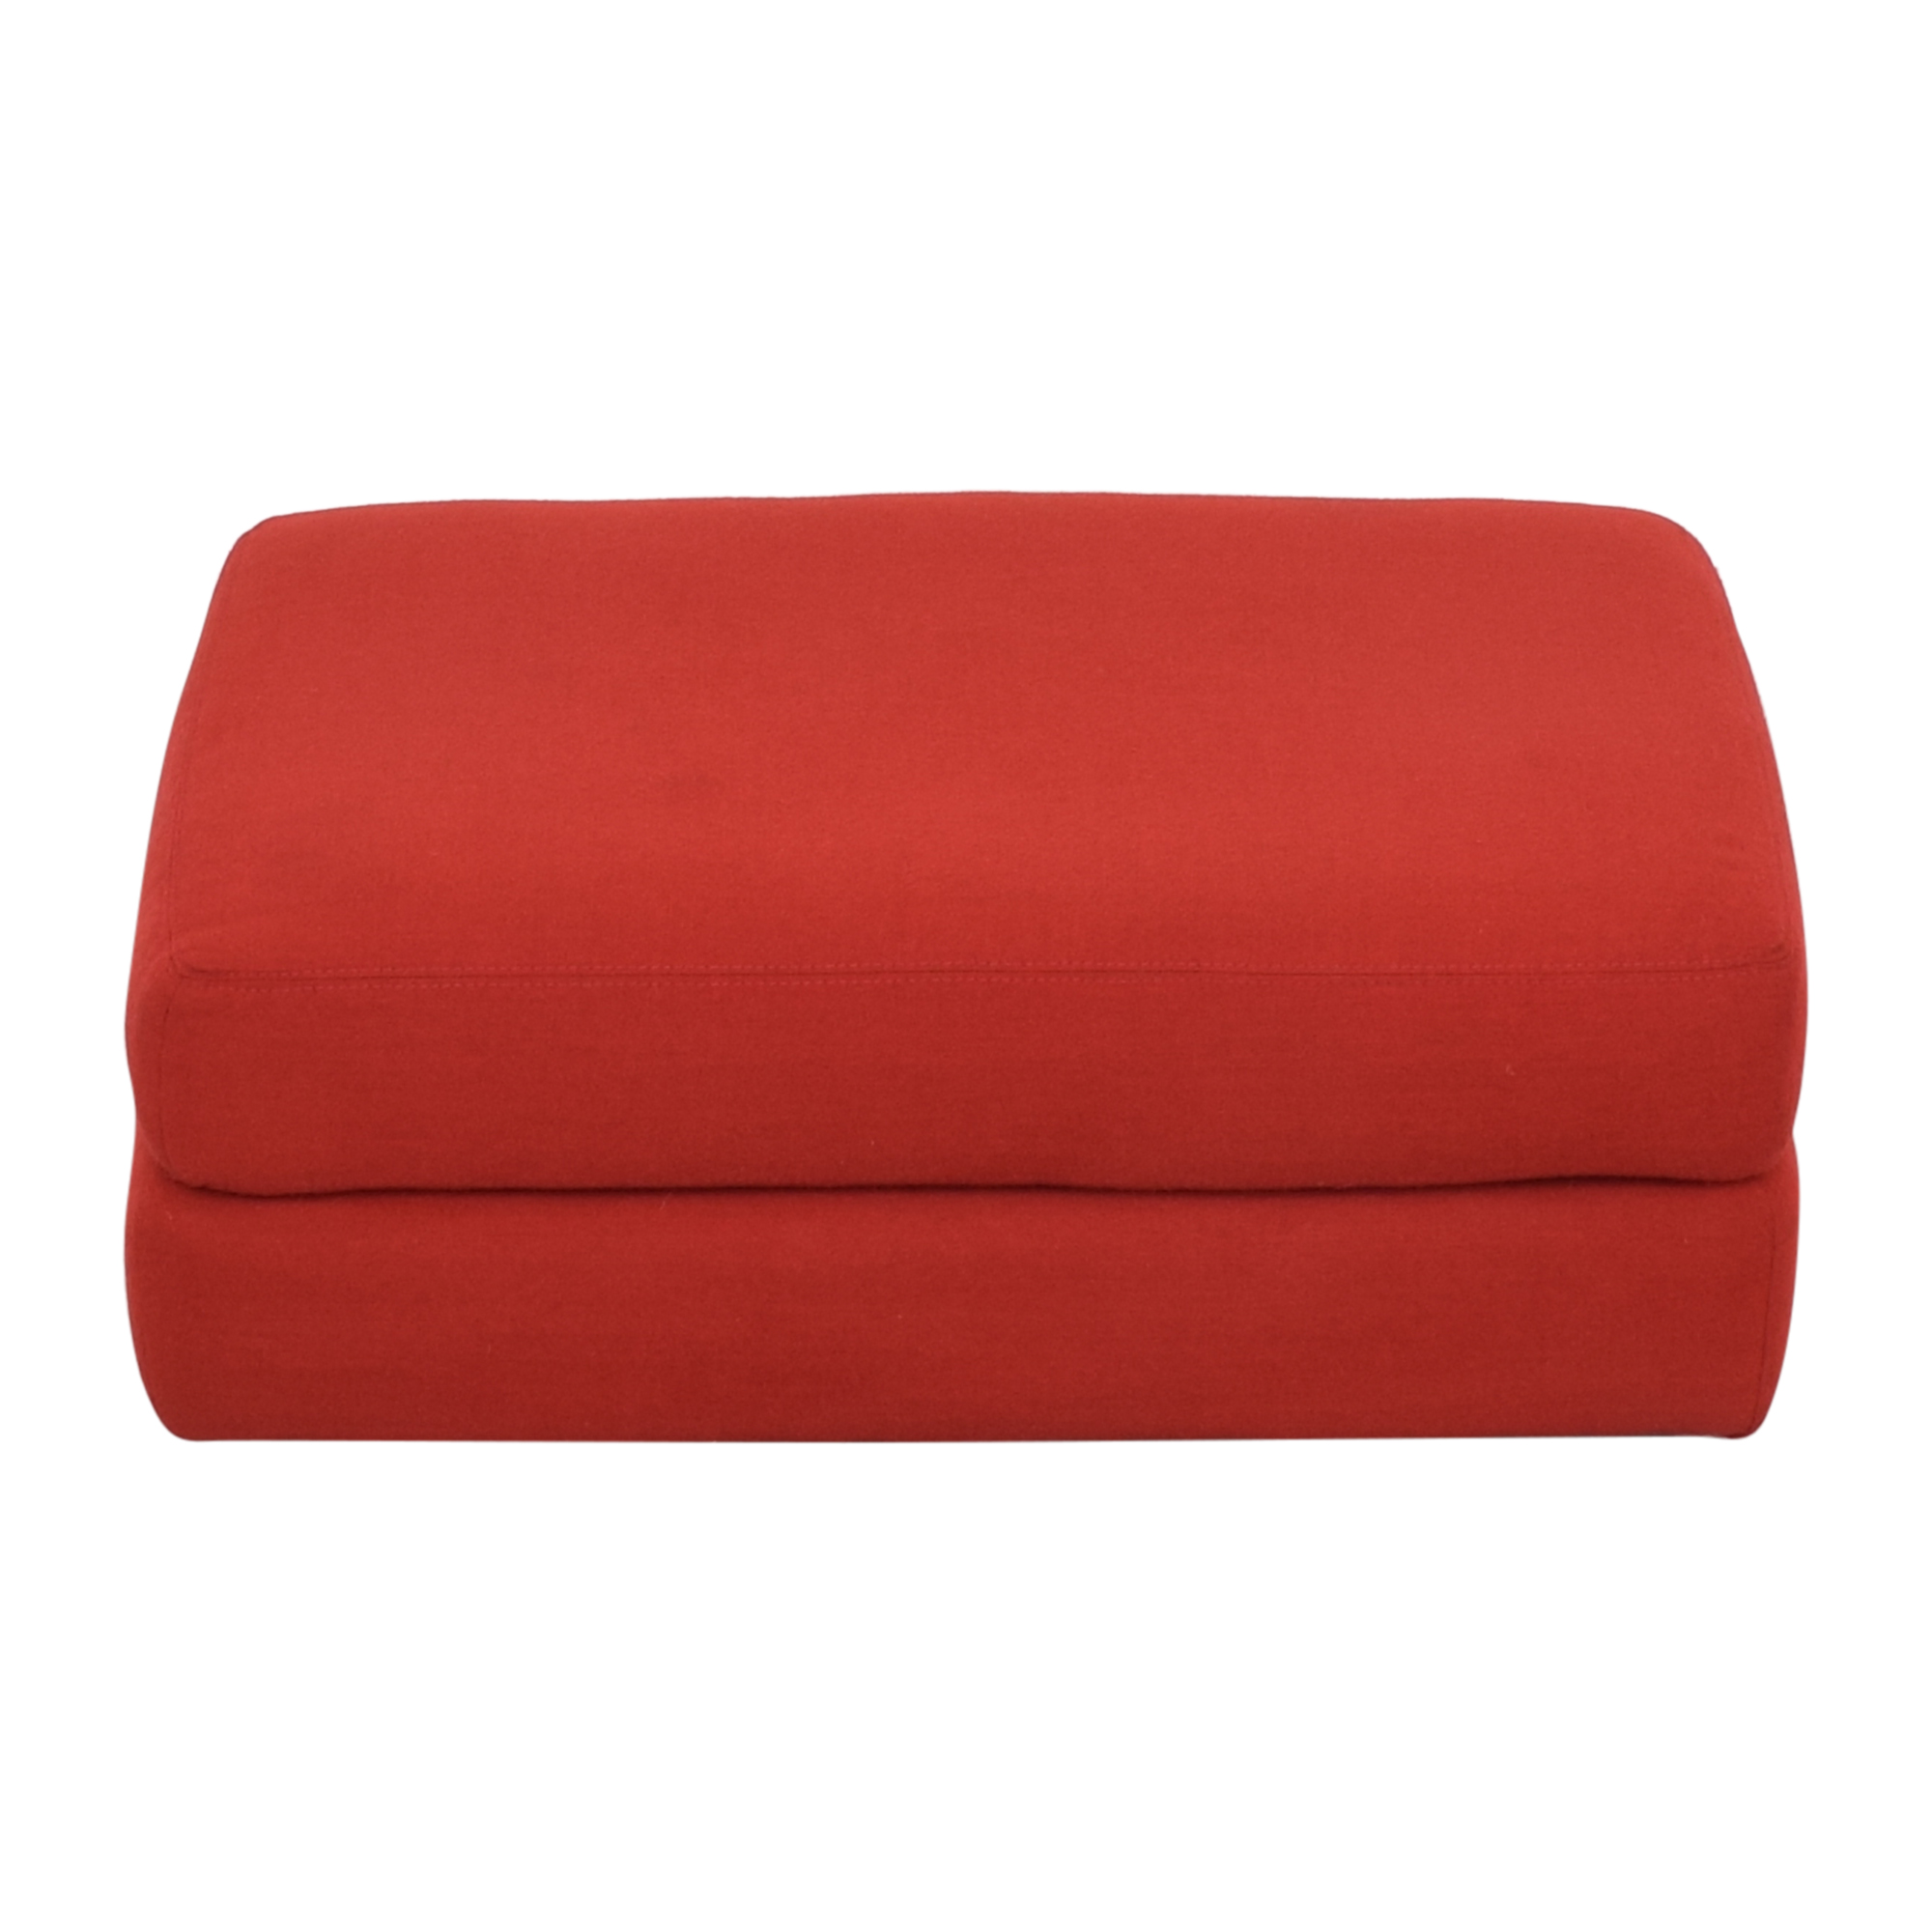 buy Design Within Reach Reid Ottoman Design Within Reach Ottomans